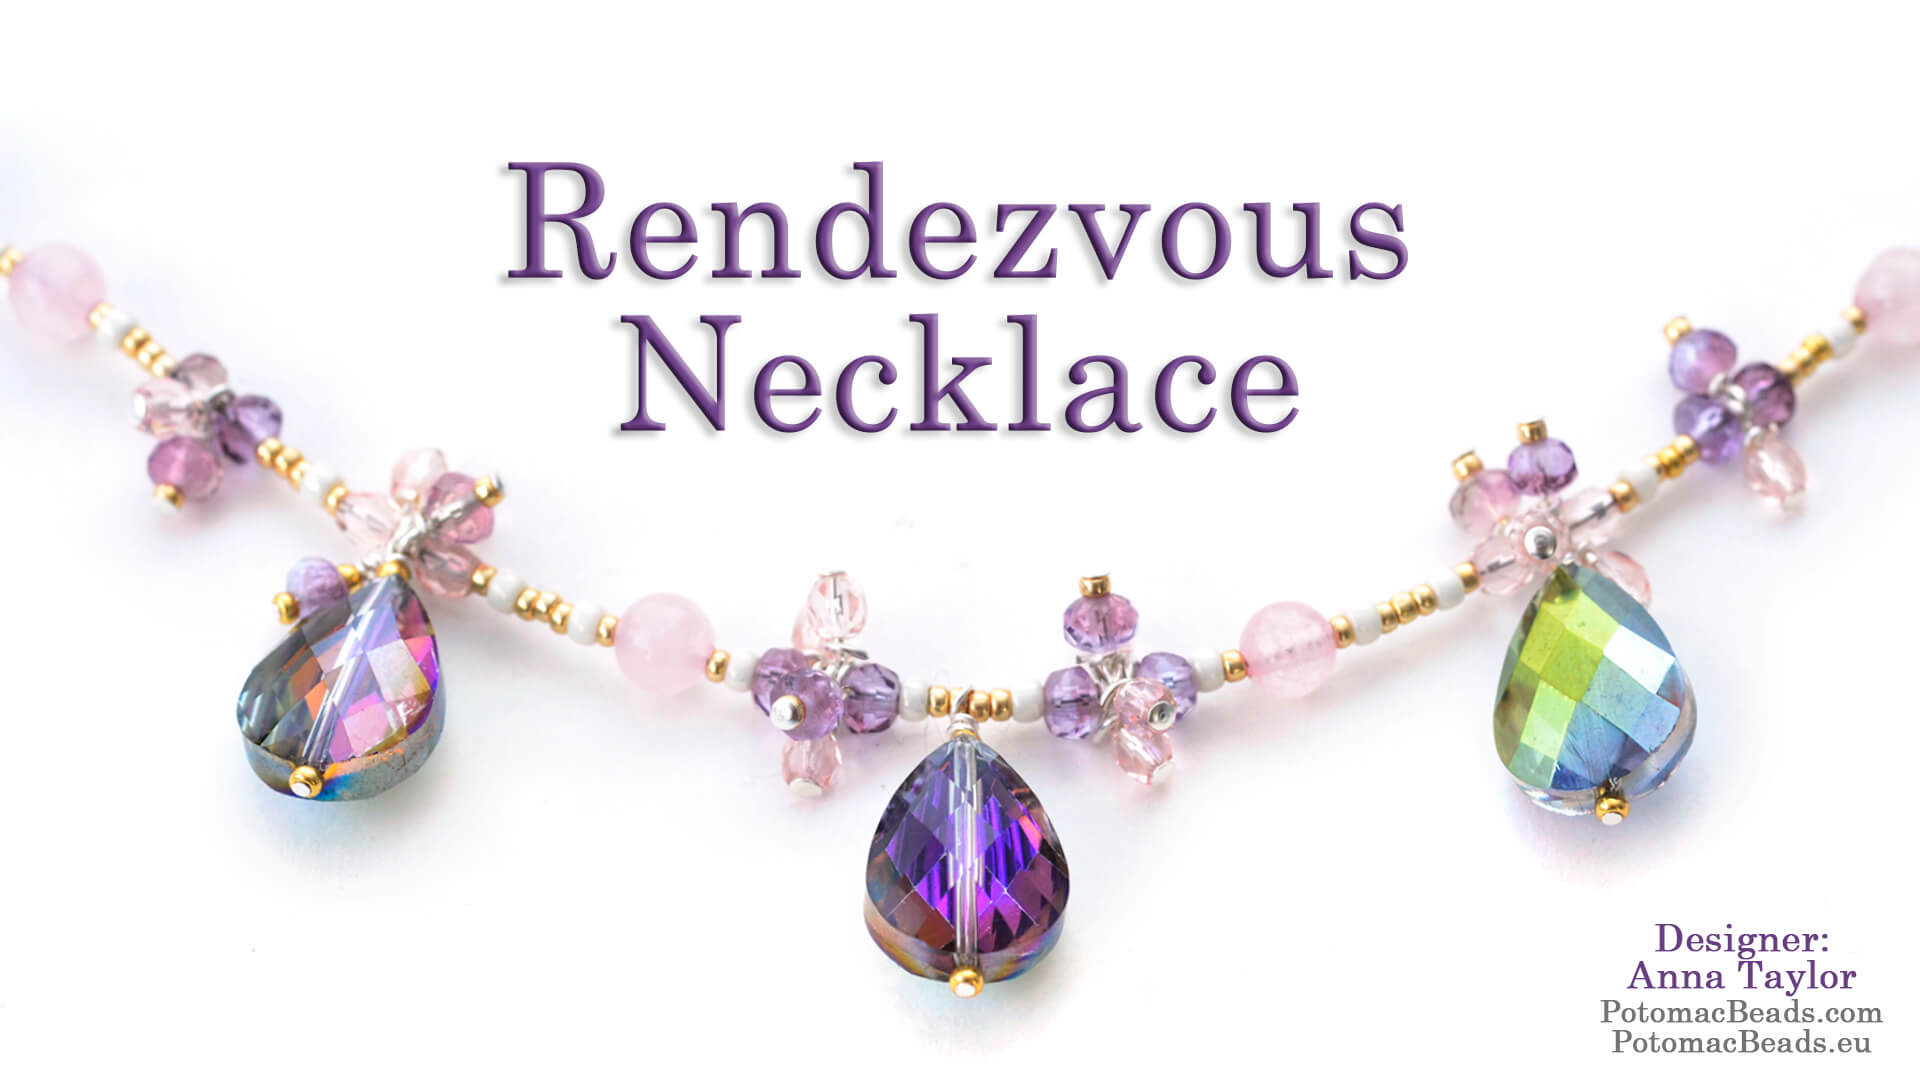 How to Bead / Videos Sorted by Beads / Gemstone Videos / Rendezvous Necklace Tutorial